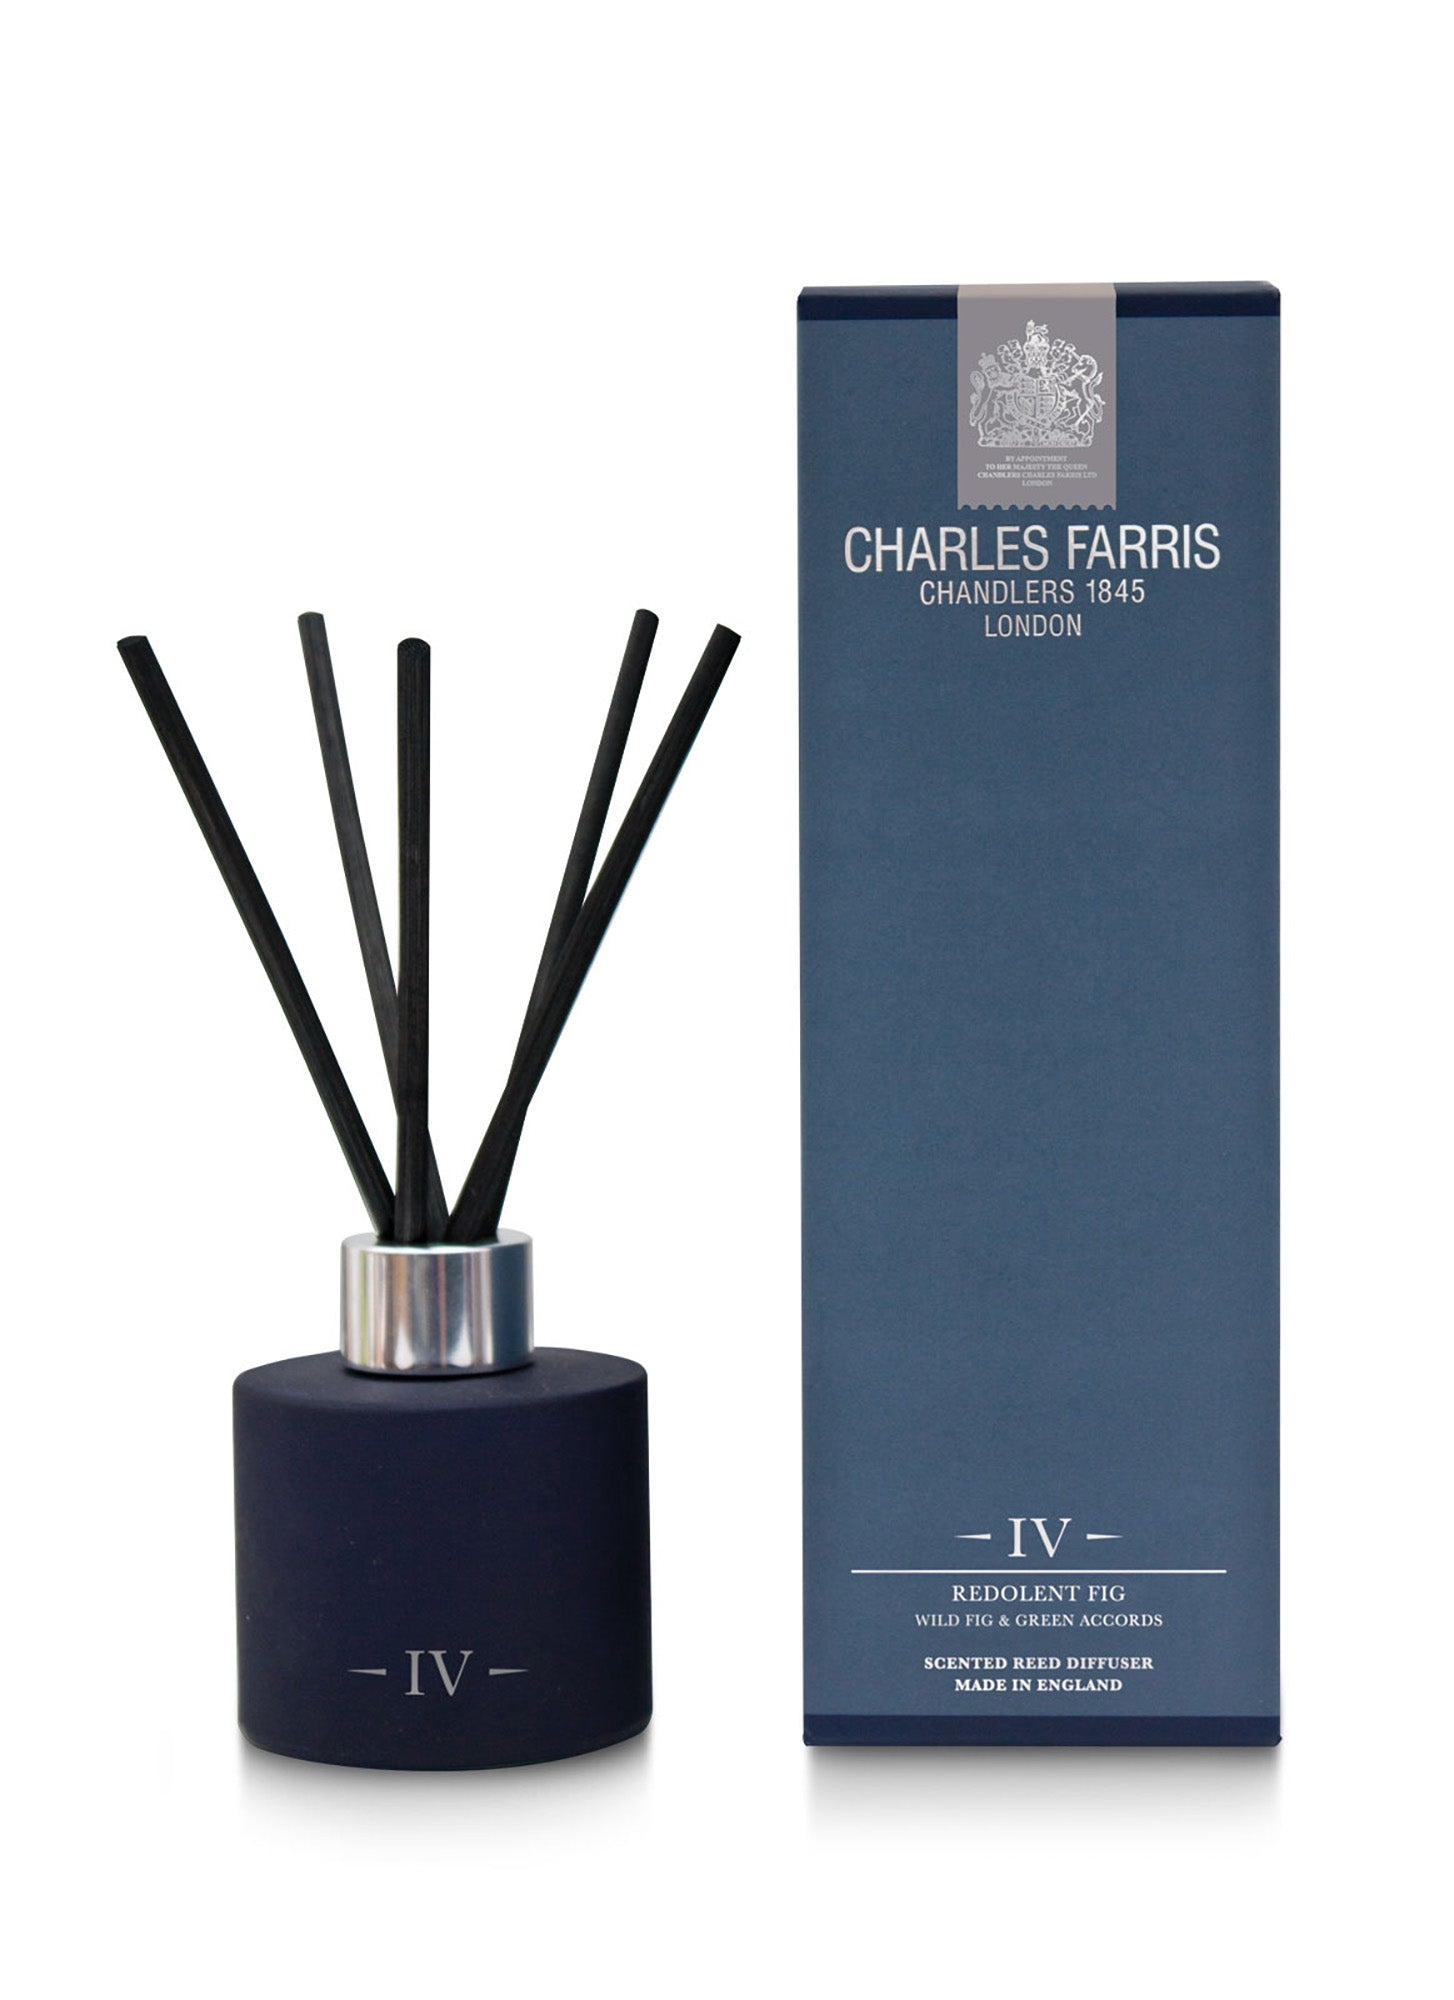 Redolent Fig Reed Diffuser | Wild Fig & Green Accords